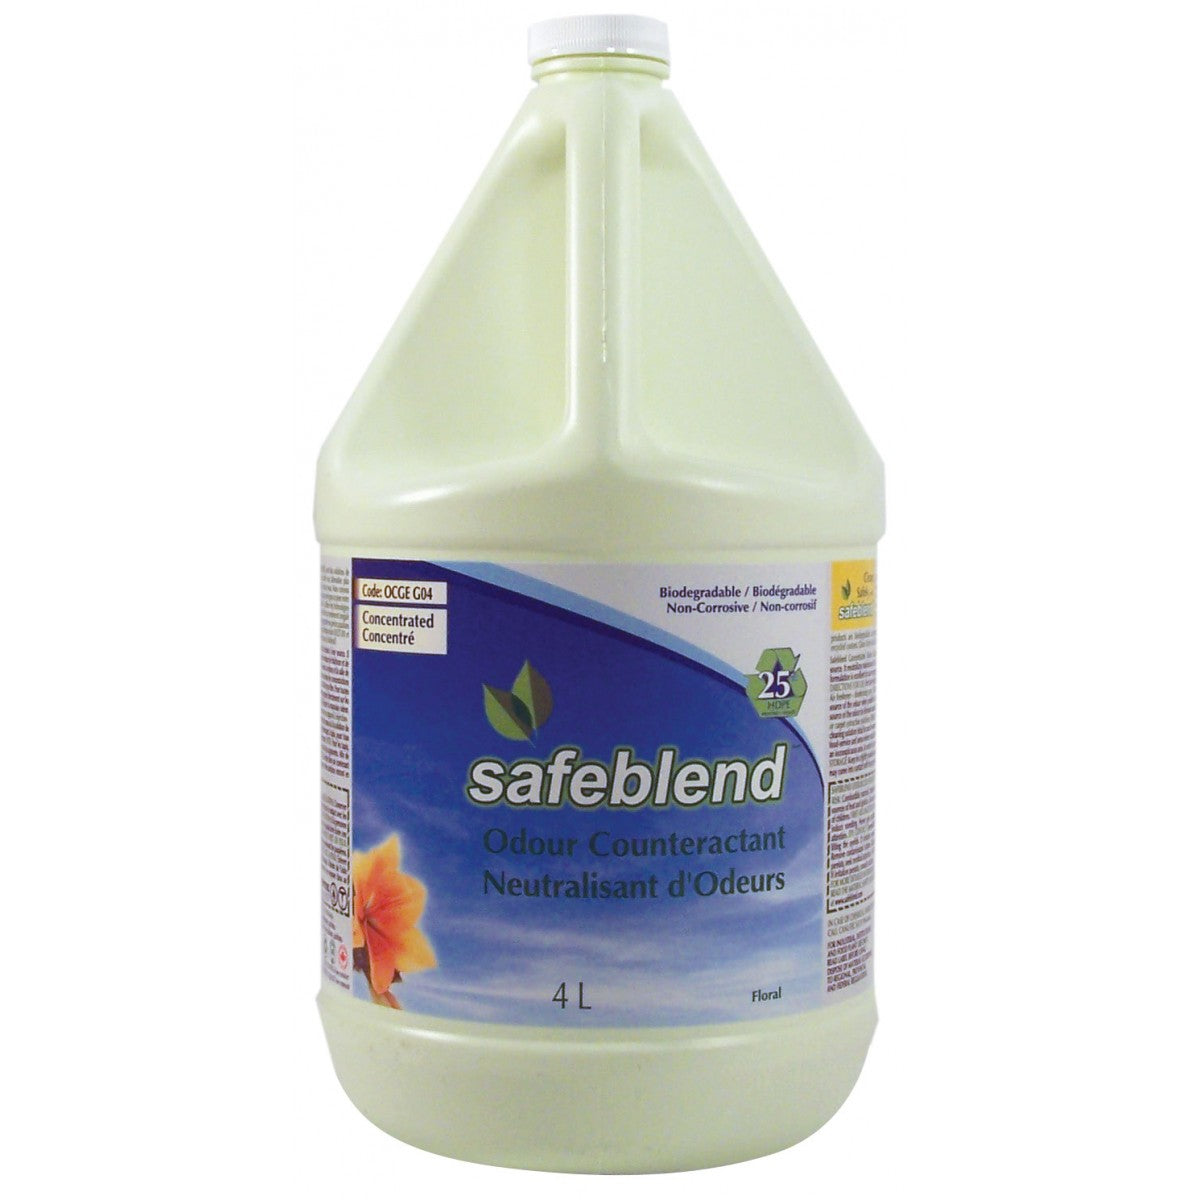 Safeblend Concentrated Odour Counteractant - 4L - Super Vacs